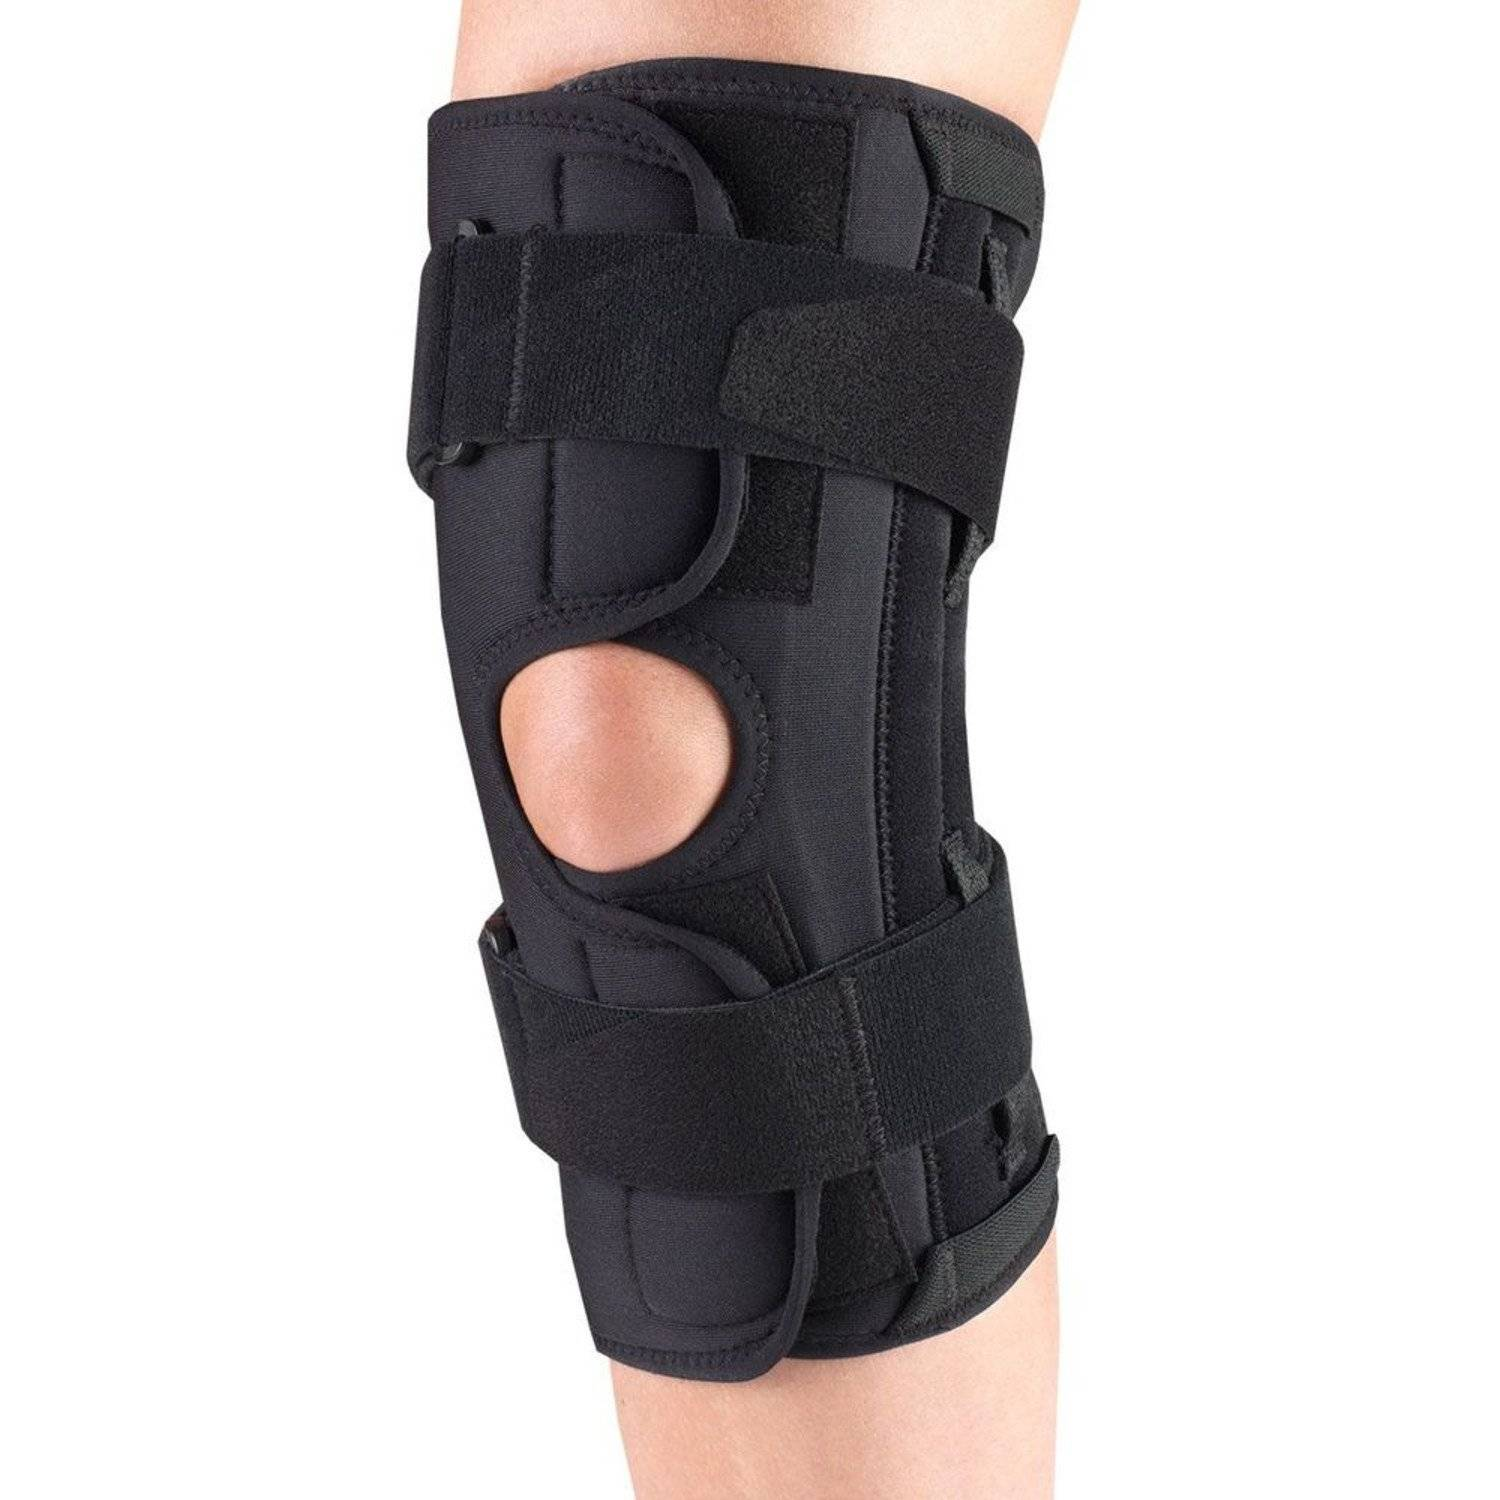 2542 / ORTHOTEX KNEE STABILIZER WRAP - SPIRAL STAYS